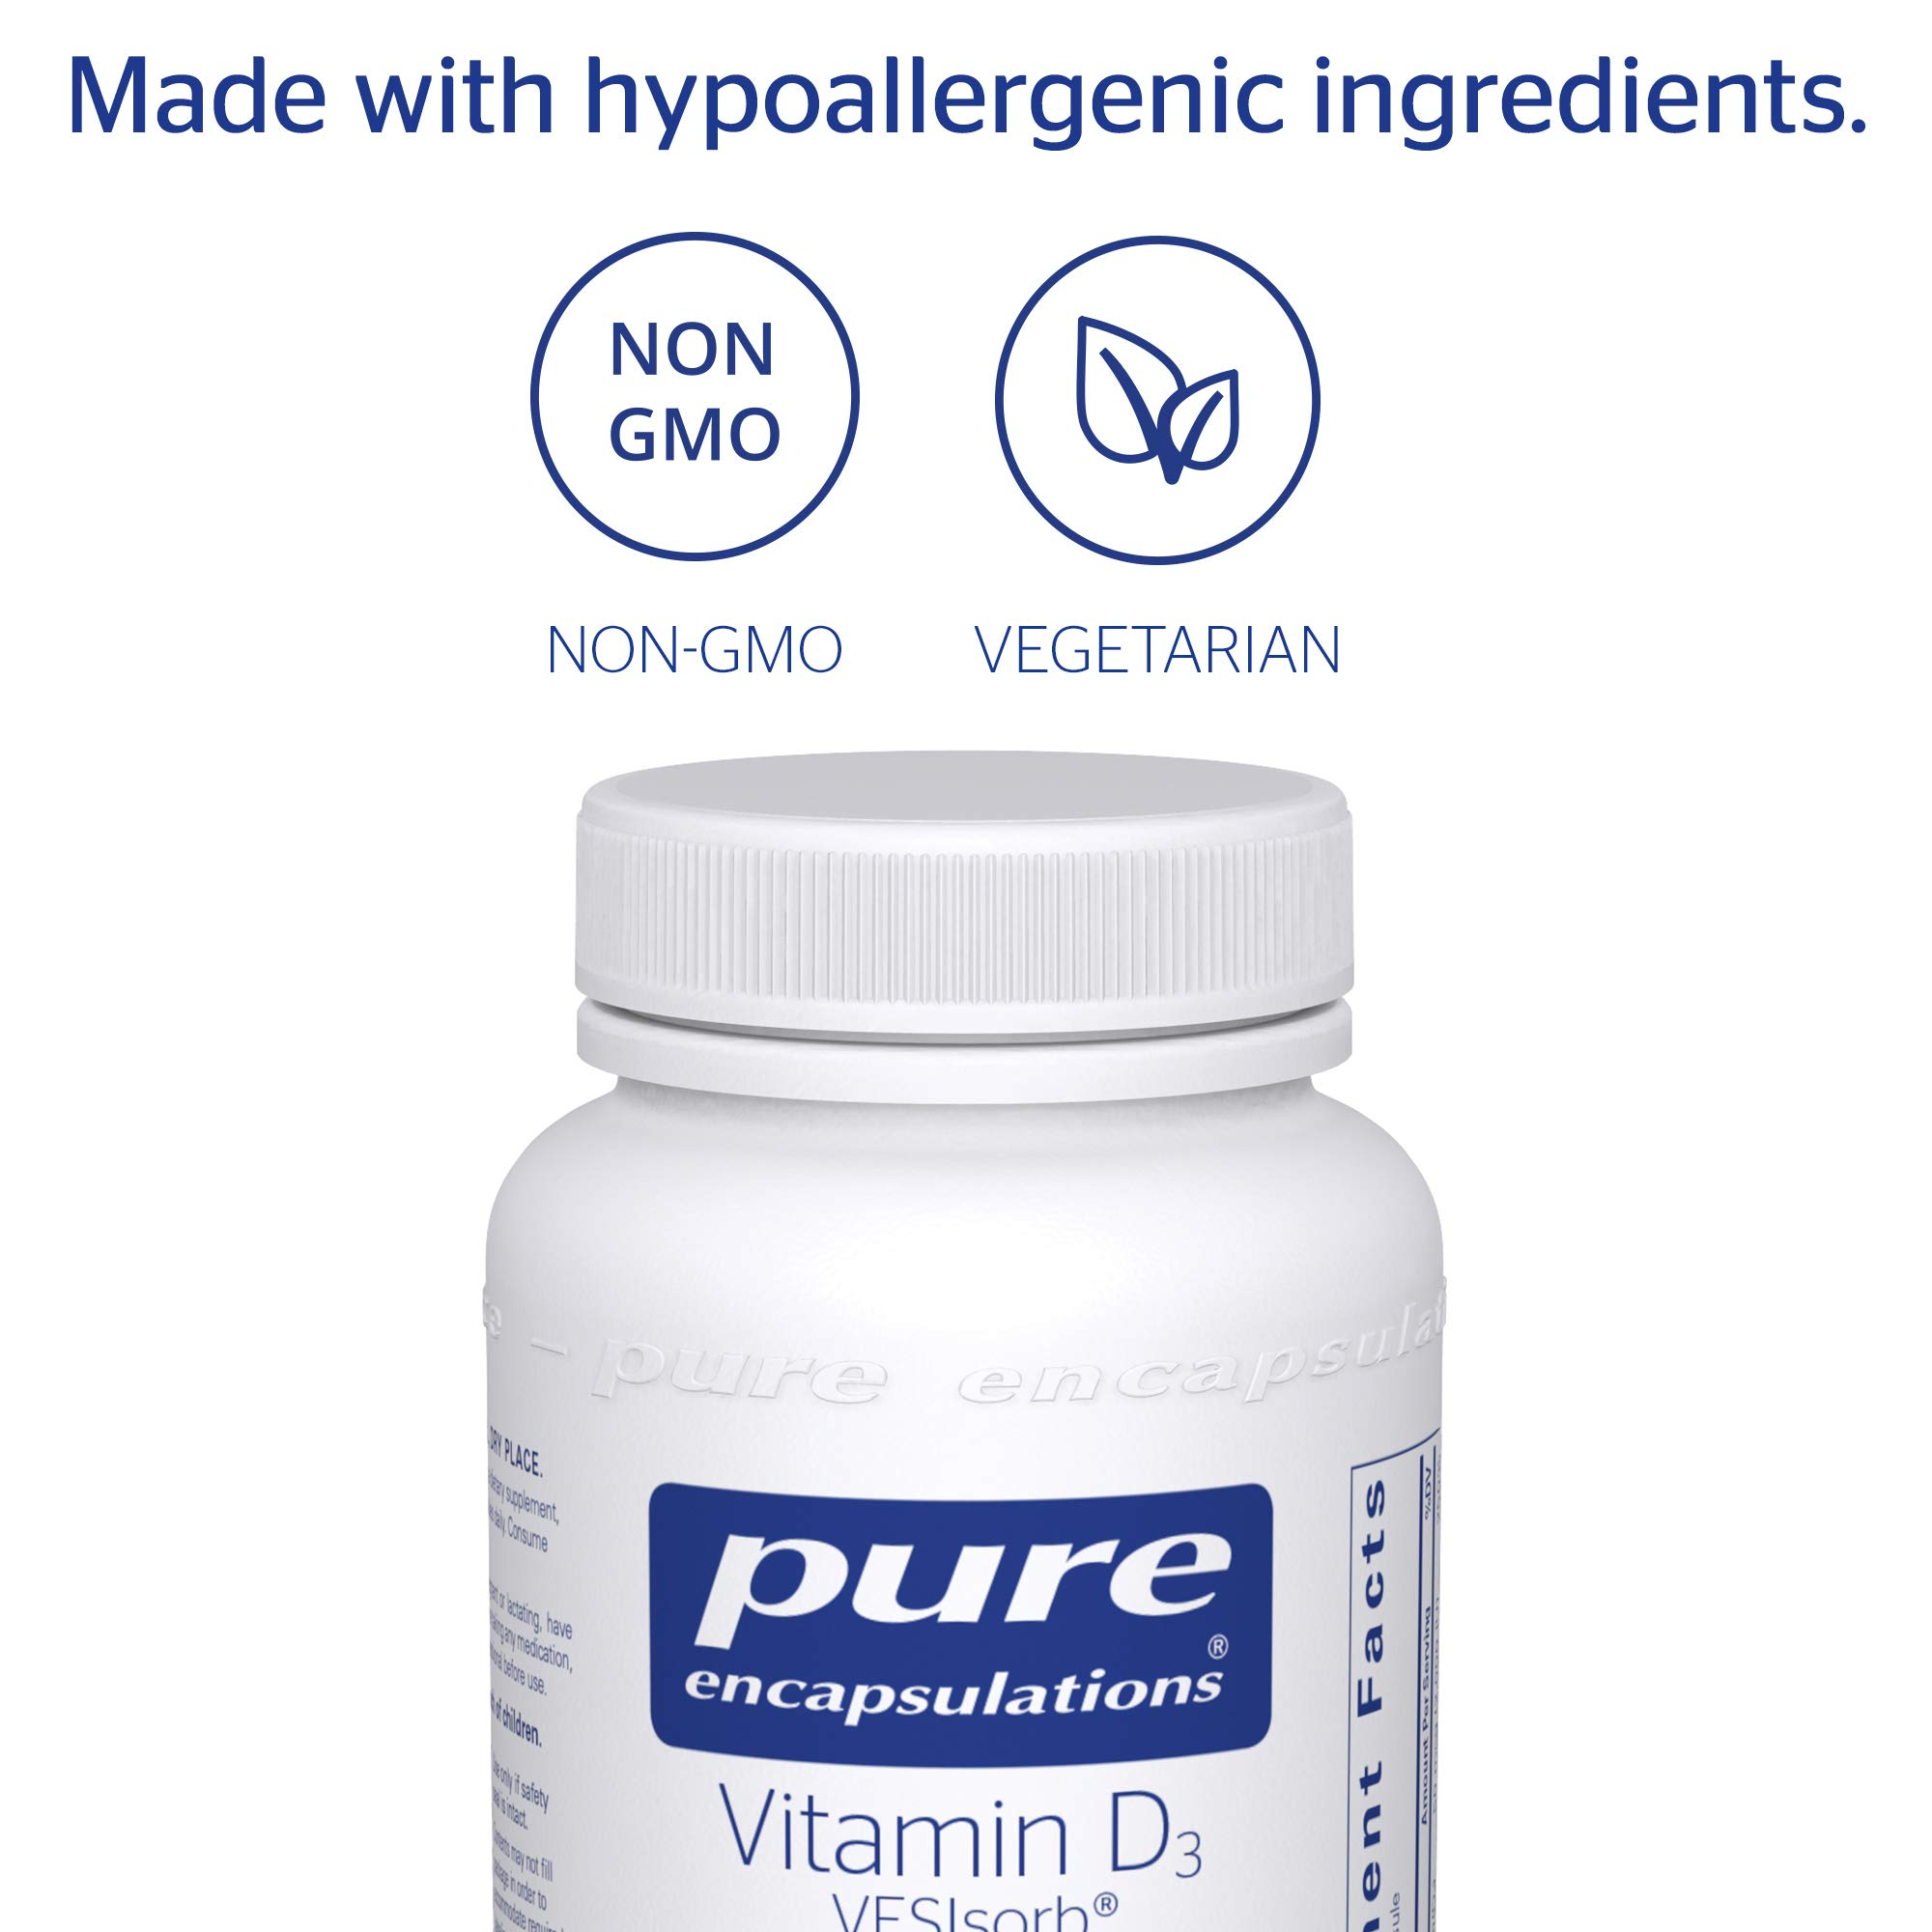 Pure Encapsulations - Vitamin D3 VESIsorb - Hypoallergenic Supplement for Enhanced Vitamin D Absorption - 60 Caplique Capsules by Pure Encapsulations (Image #4)